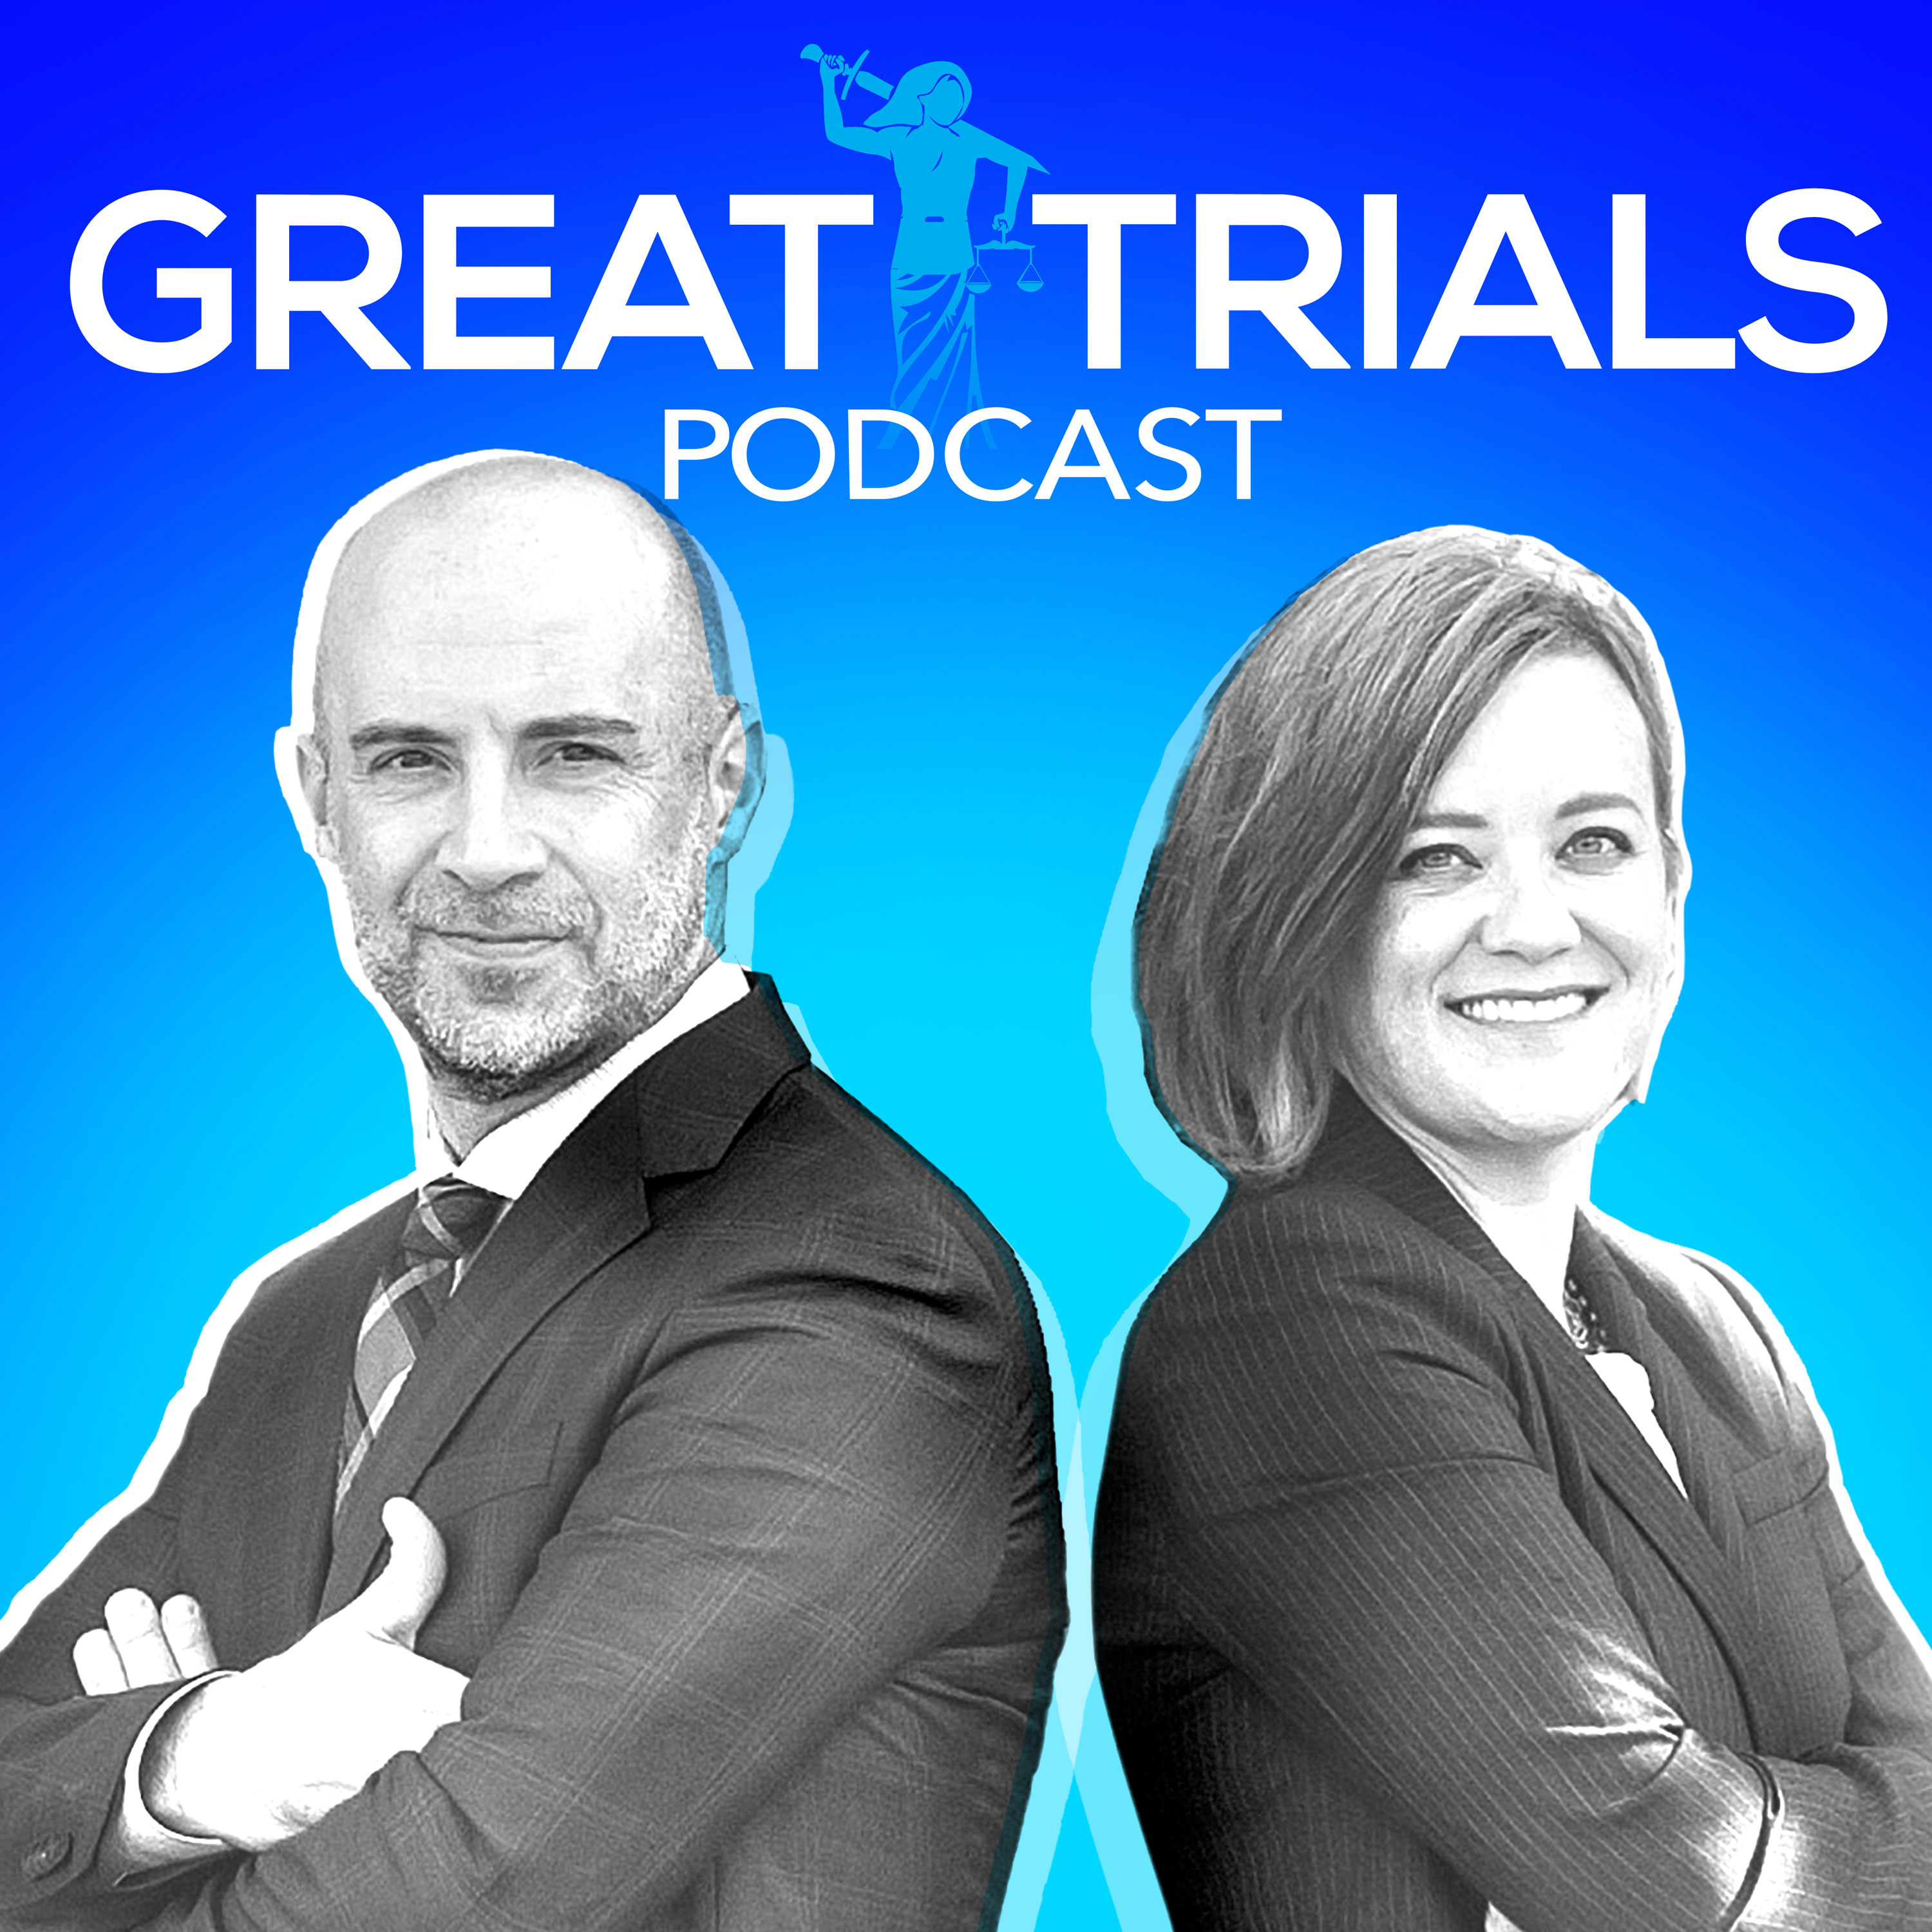 The Great Trials Podcast